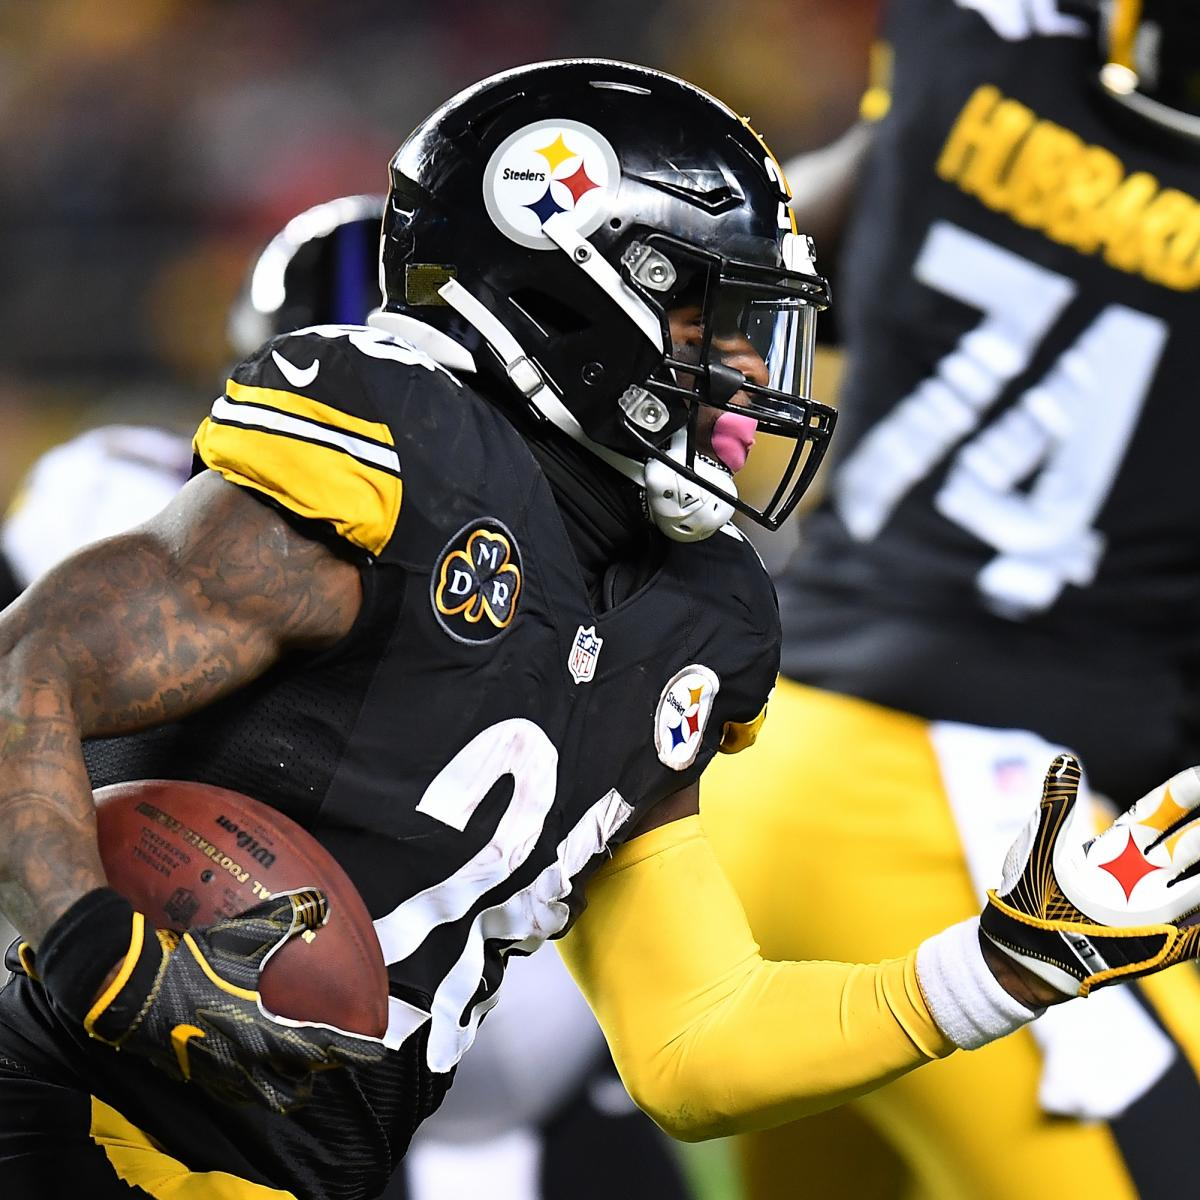 Jaguars vs. Steelers: Updated Odds,Stat Predictions for 2018 AFC Divisional Game